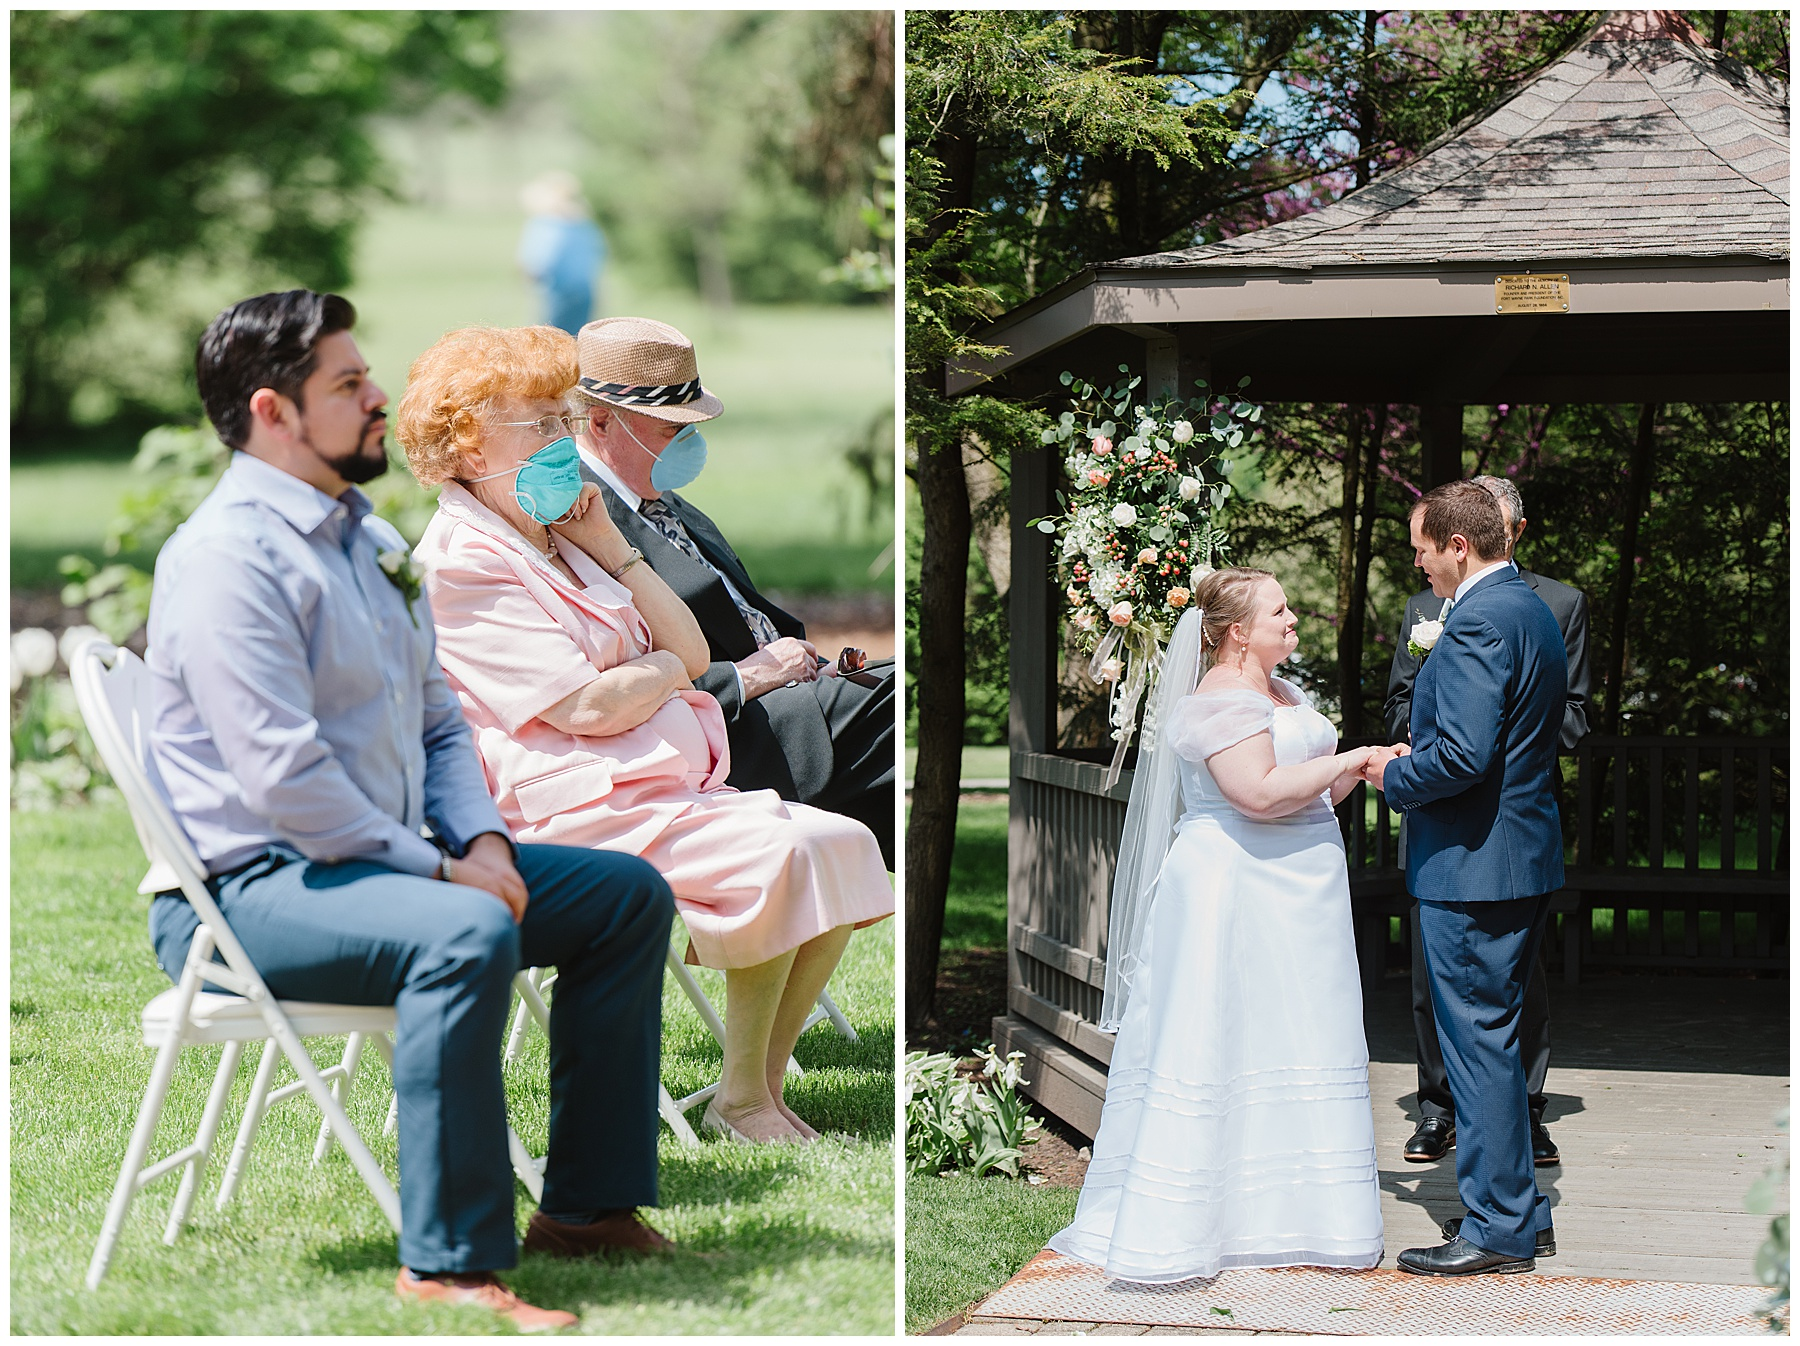 foster park fort wayne indiana wedding photographer_0214